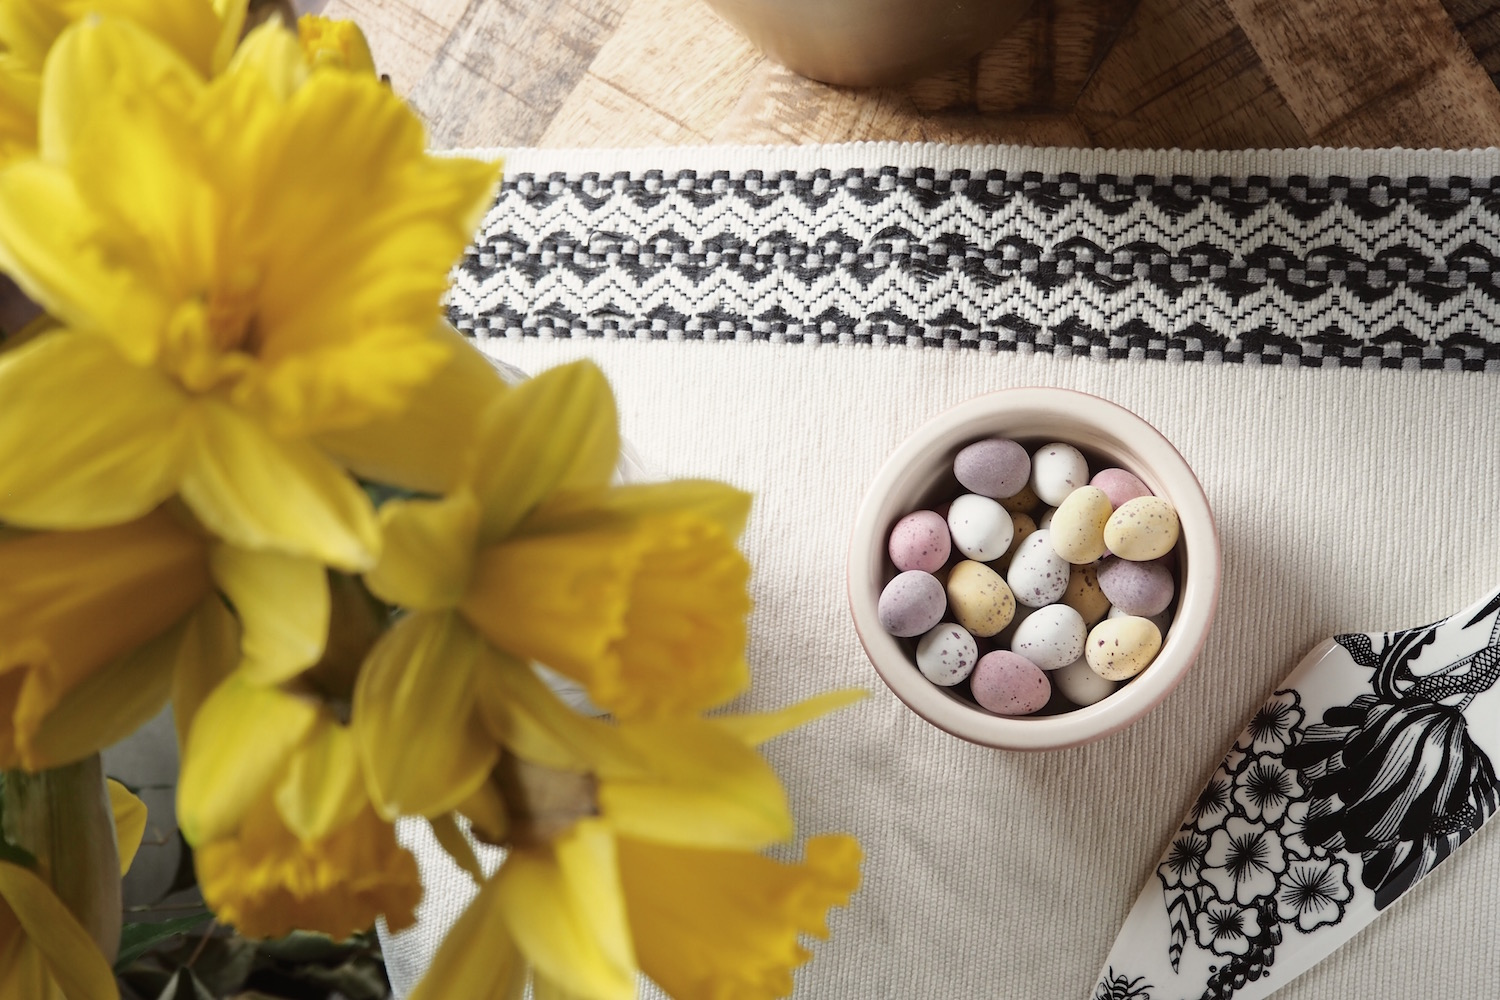 Cheap Tricks: Decorating for Easter on a Budget